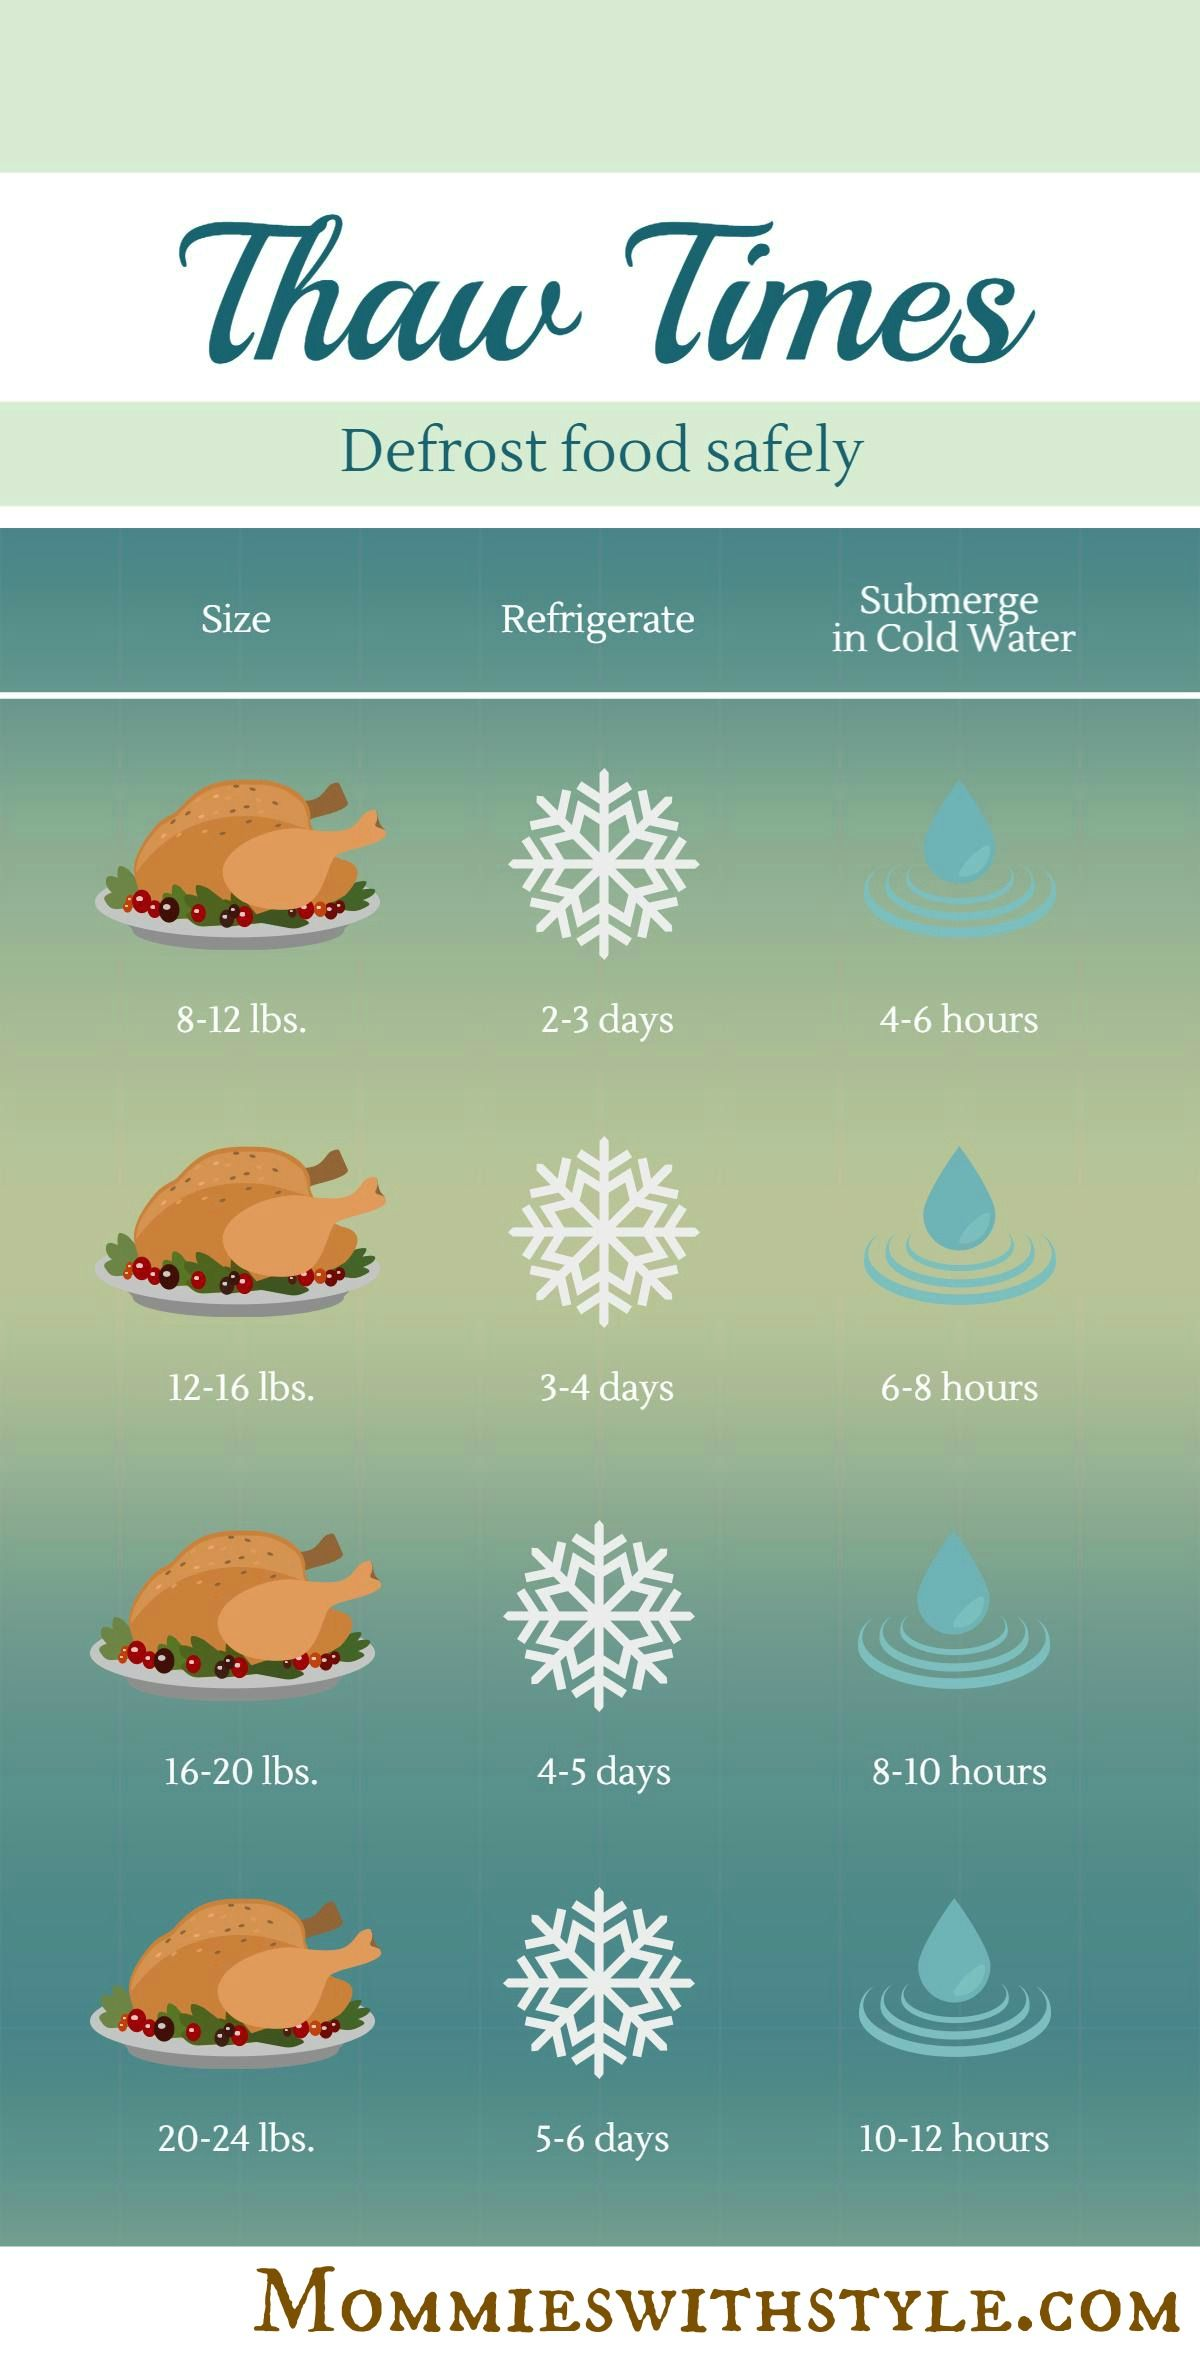 15+ Thanksgiving Infographic Examples, Ideas & Templates - Daily Design Inspiration #37